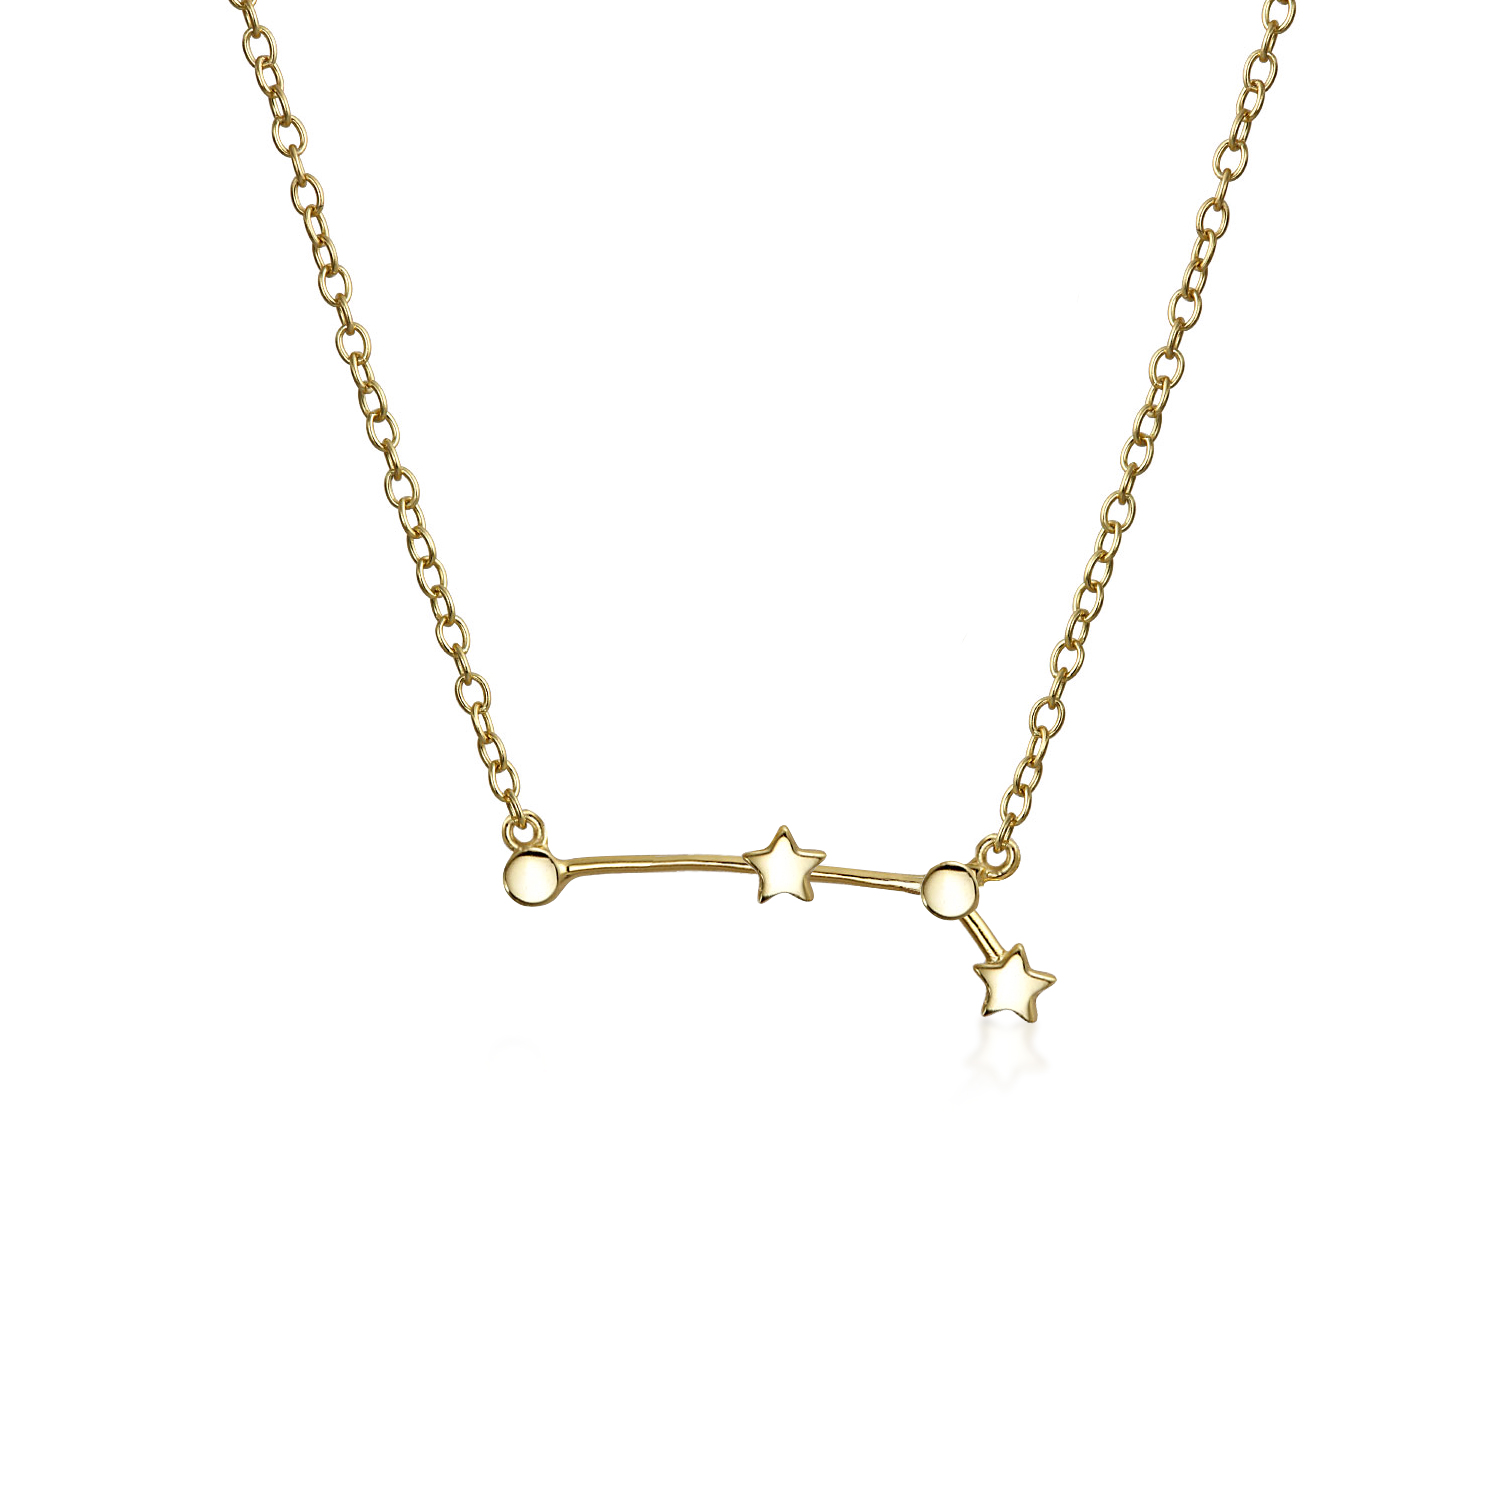 constellation_aries_necklace_zodiac_gold_PFS-15-1328-AZ_1-1.jpg